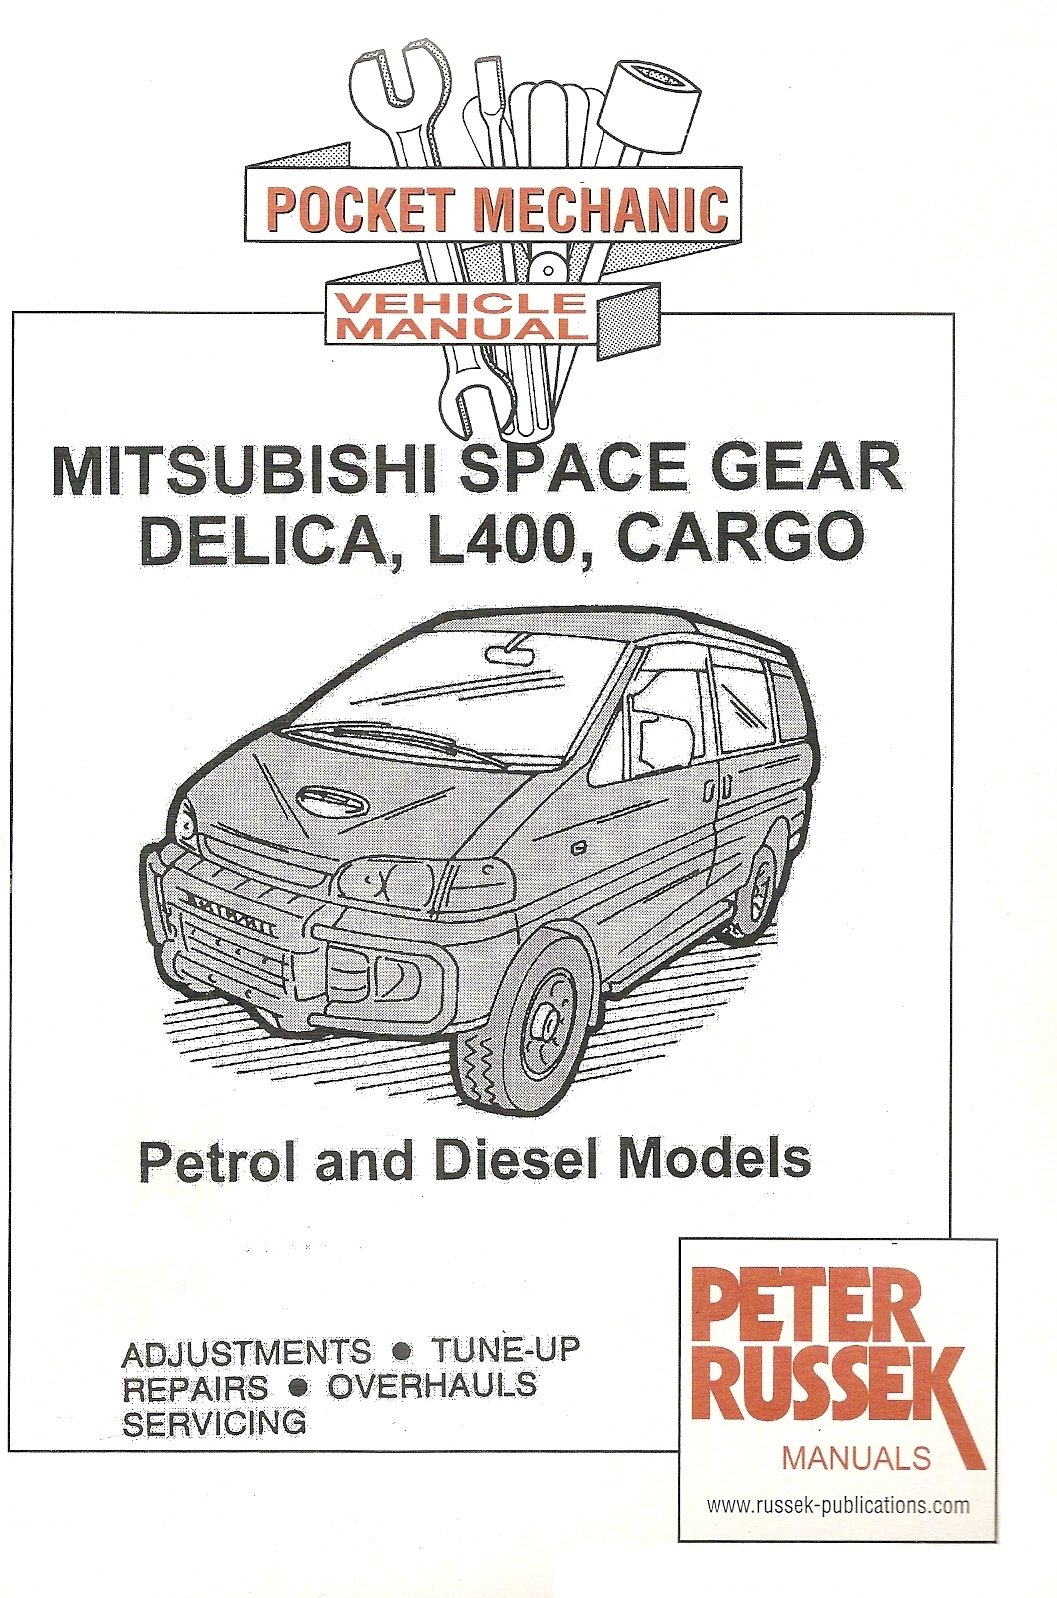 815lmrVHudL pocket mechanic for mitsubishi space gear, l400, delica, cargo mitsubishi delica l400 wiring diagrams download at alyssarenee.co